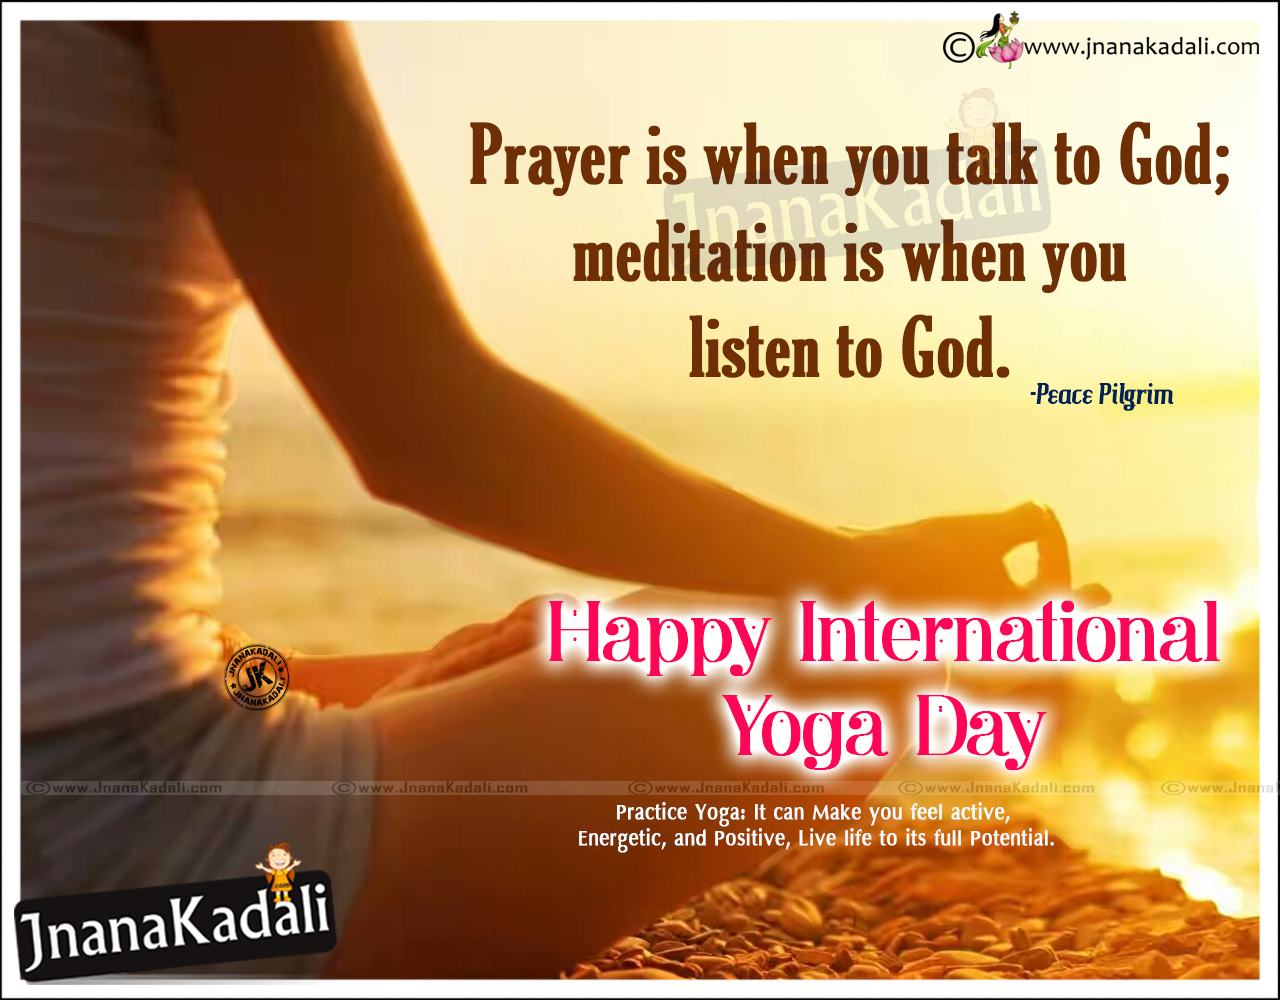 International Yoga Day Messages And Greetings Sms Jnana Kadalicom